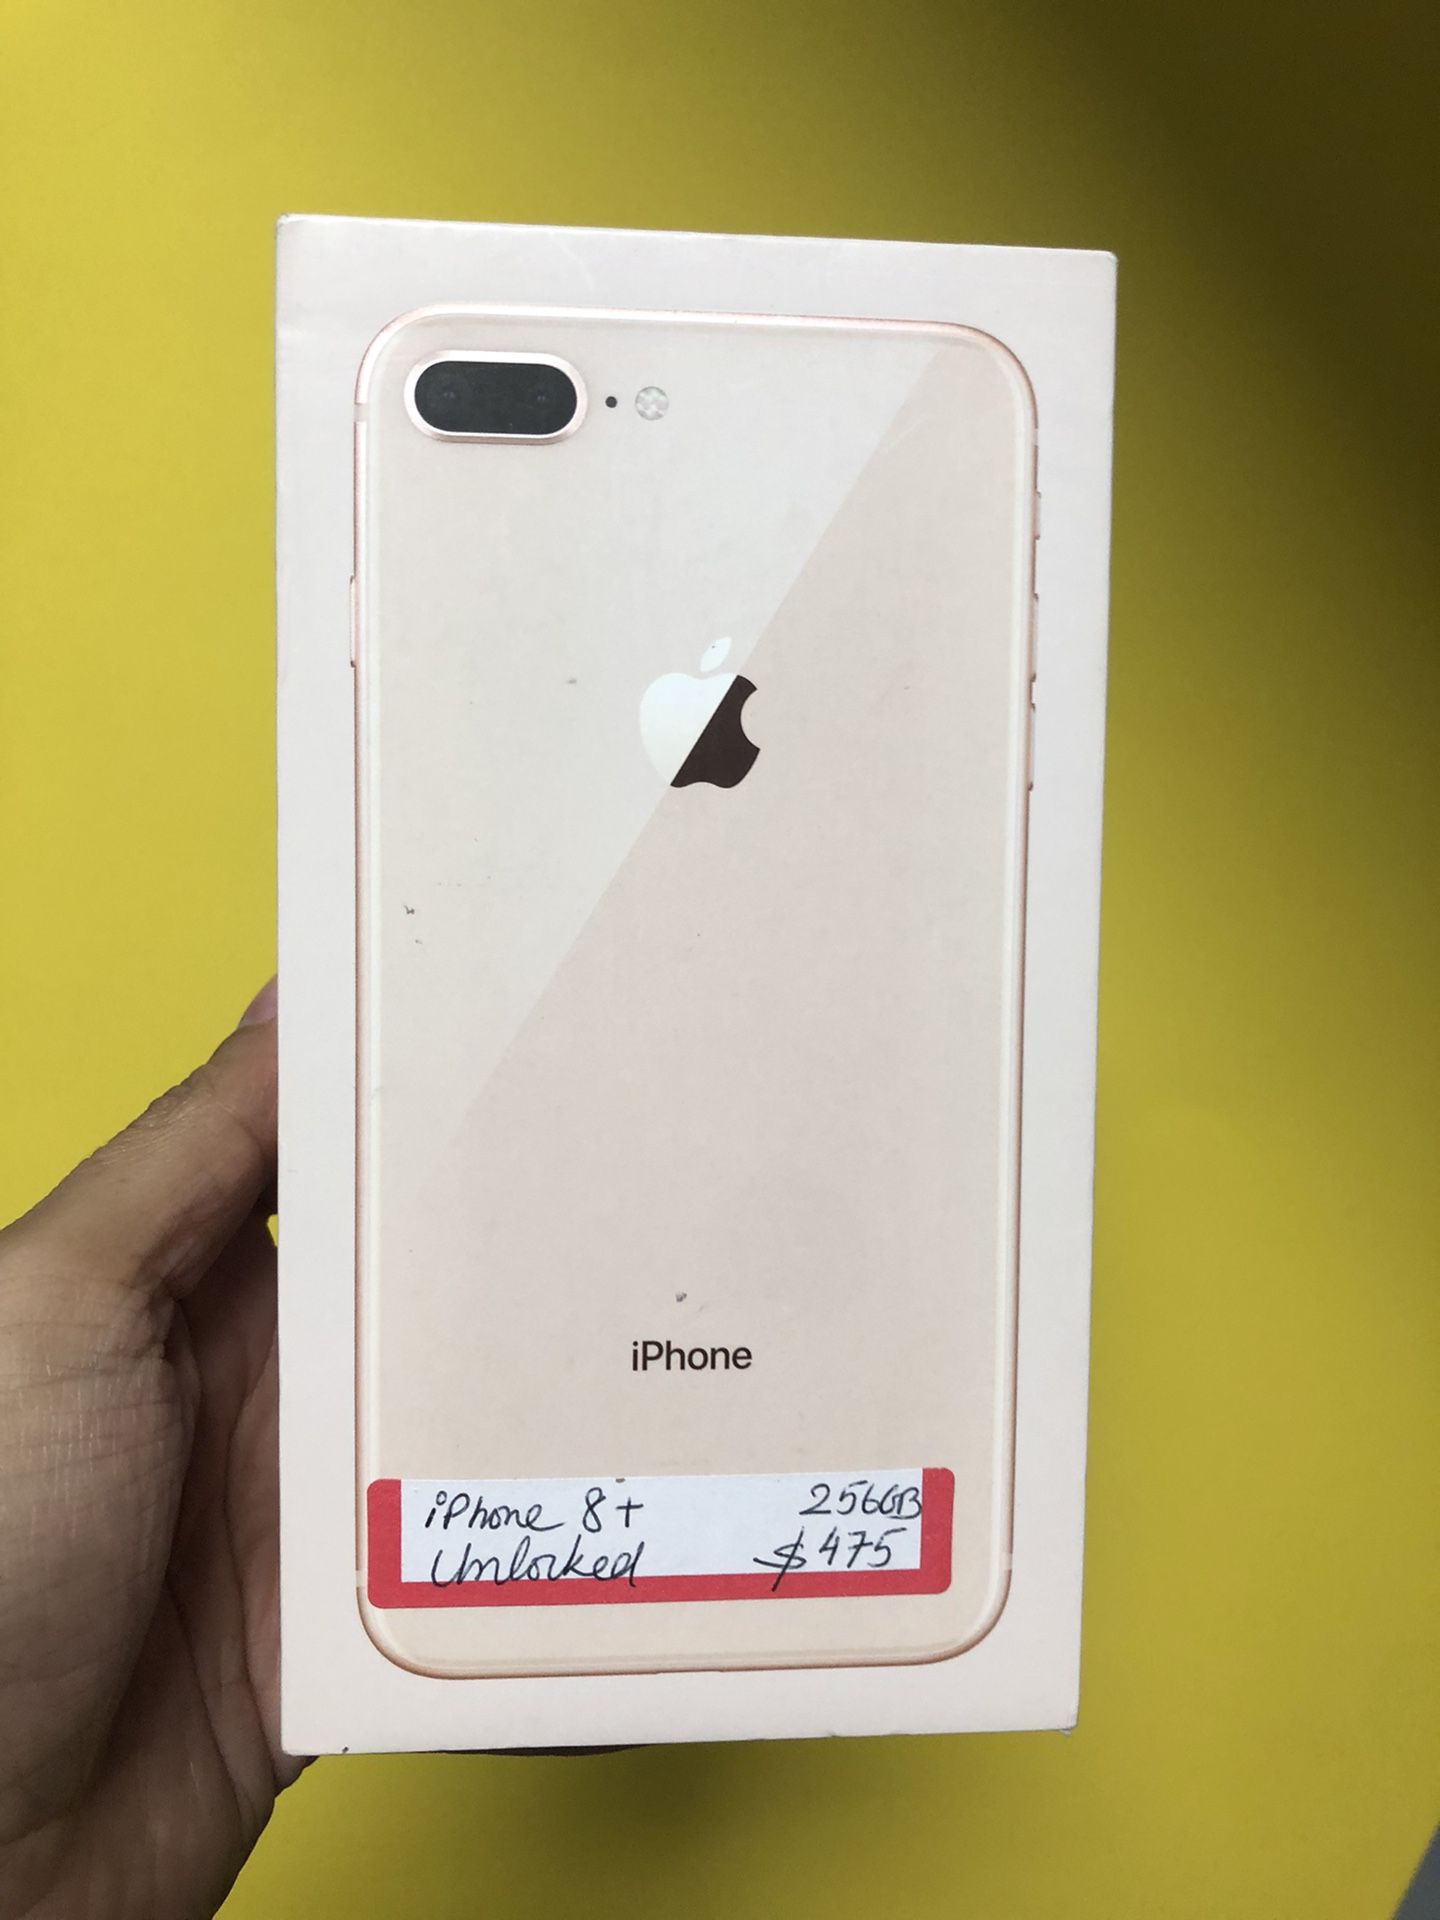 iPhone 8 Plus 256GB Unlocked Financing Available For 54 Down No Credit Needed Take Home Today